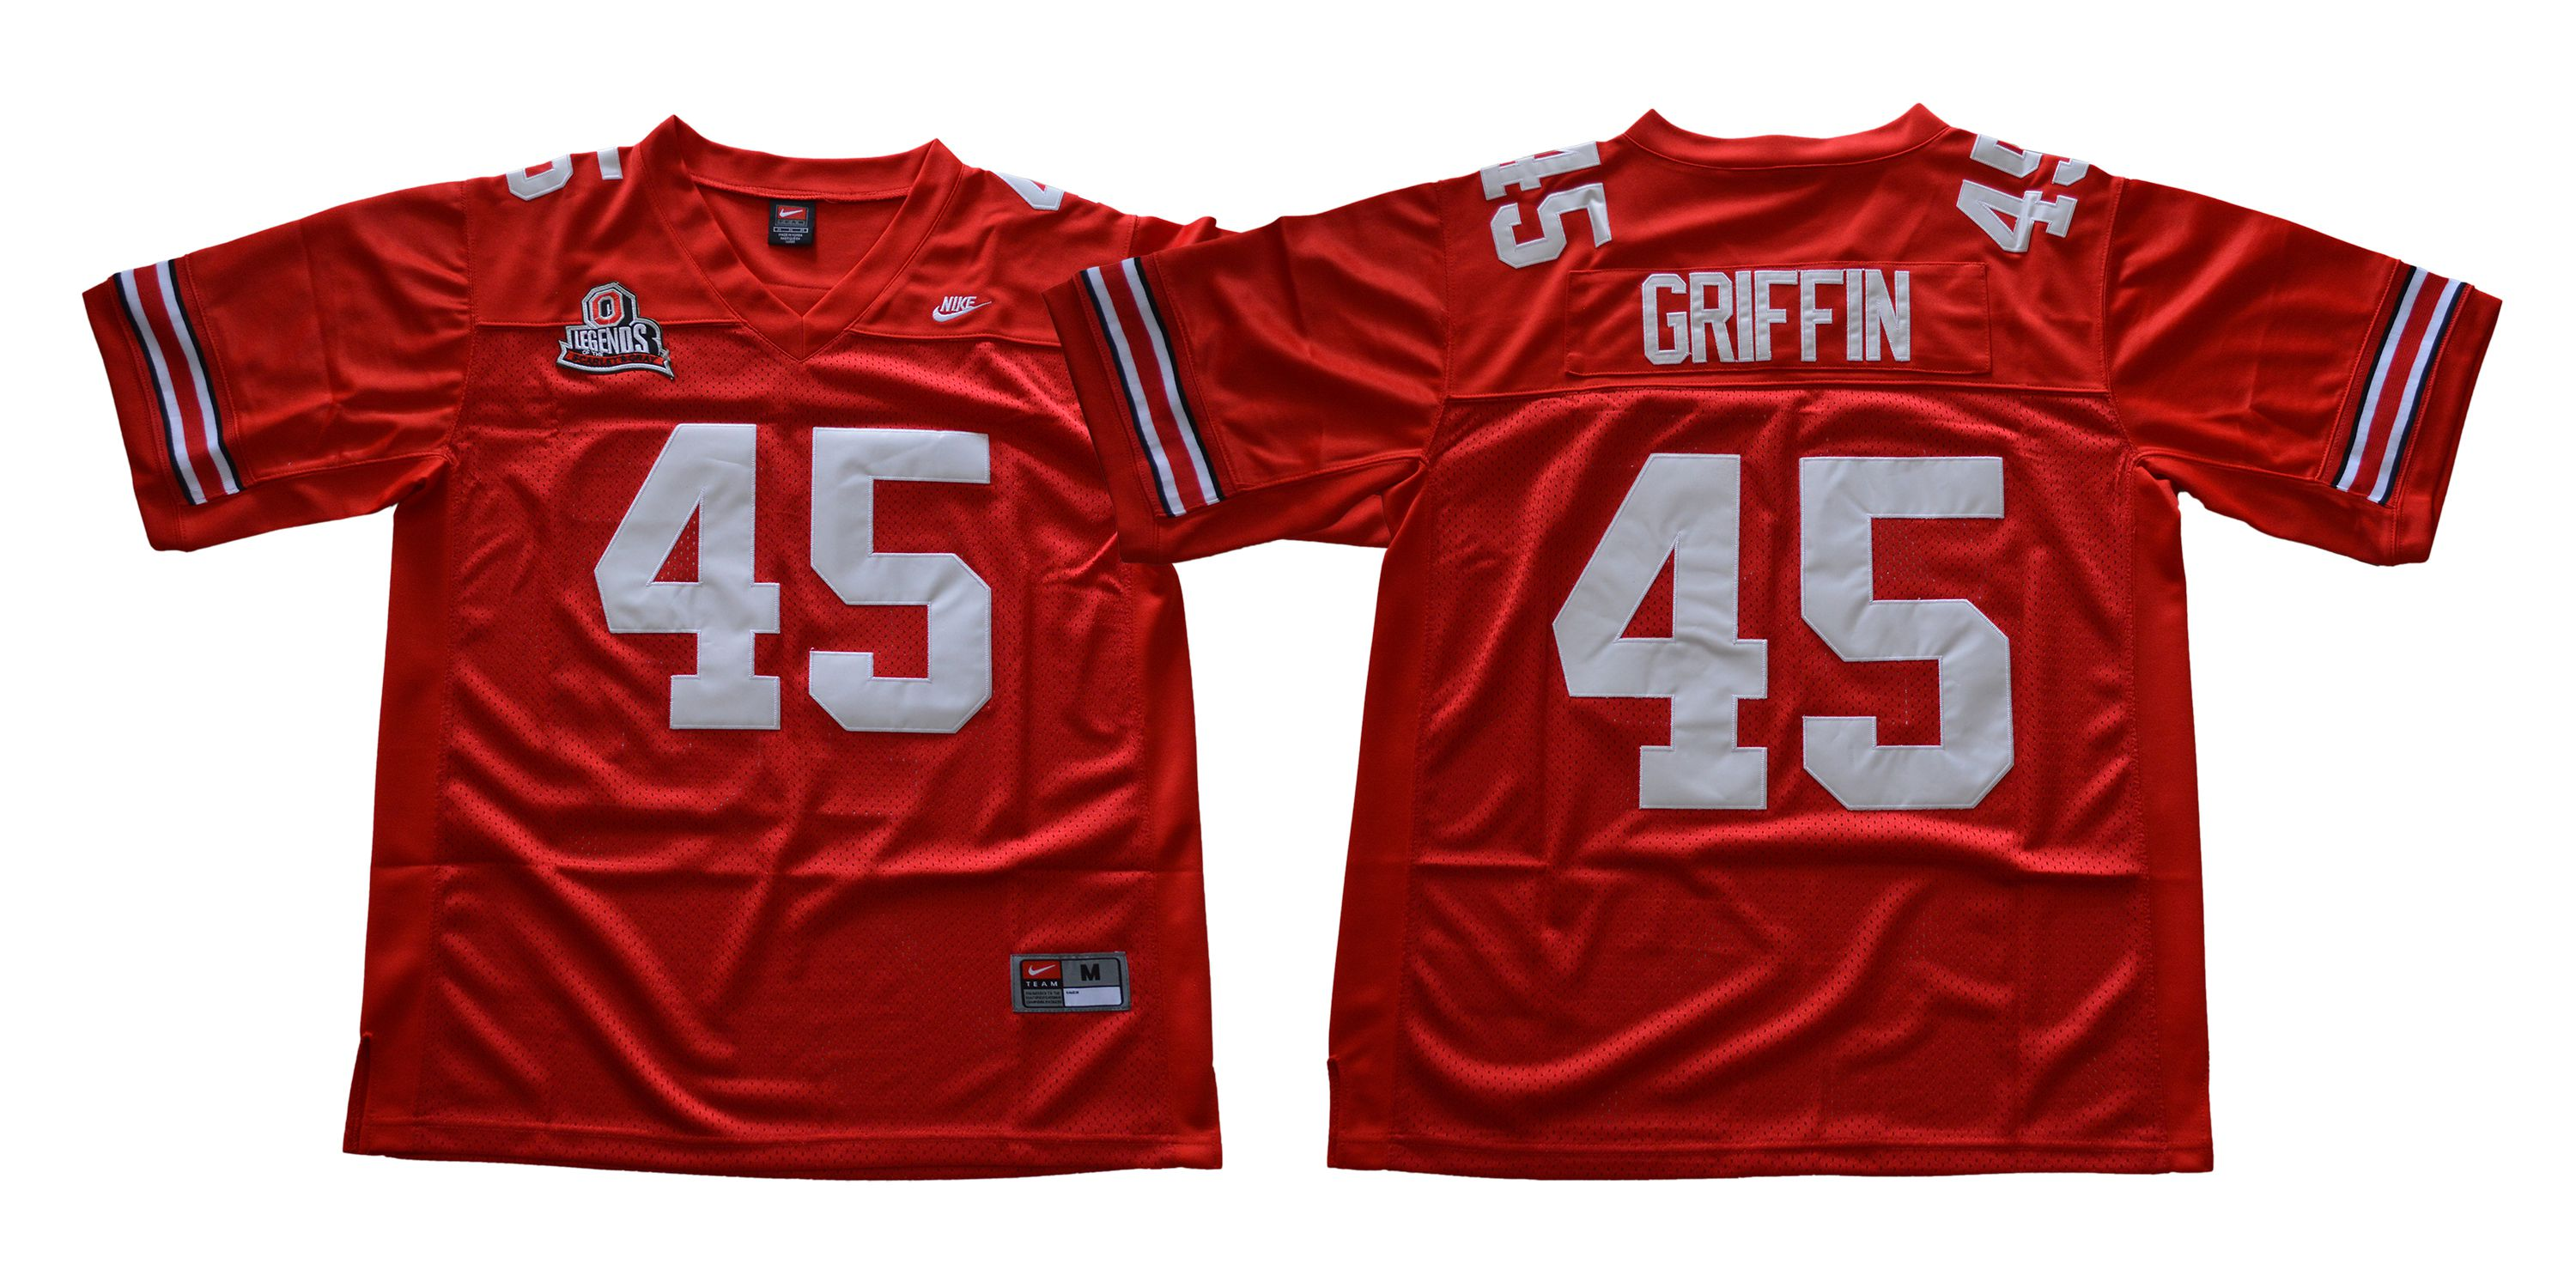 Men Ohio State Buckeyes 45 Griffin Red Throwback Nike NCAA Jerseys